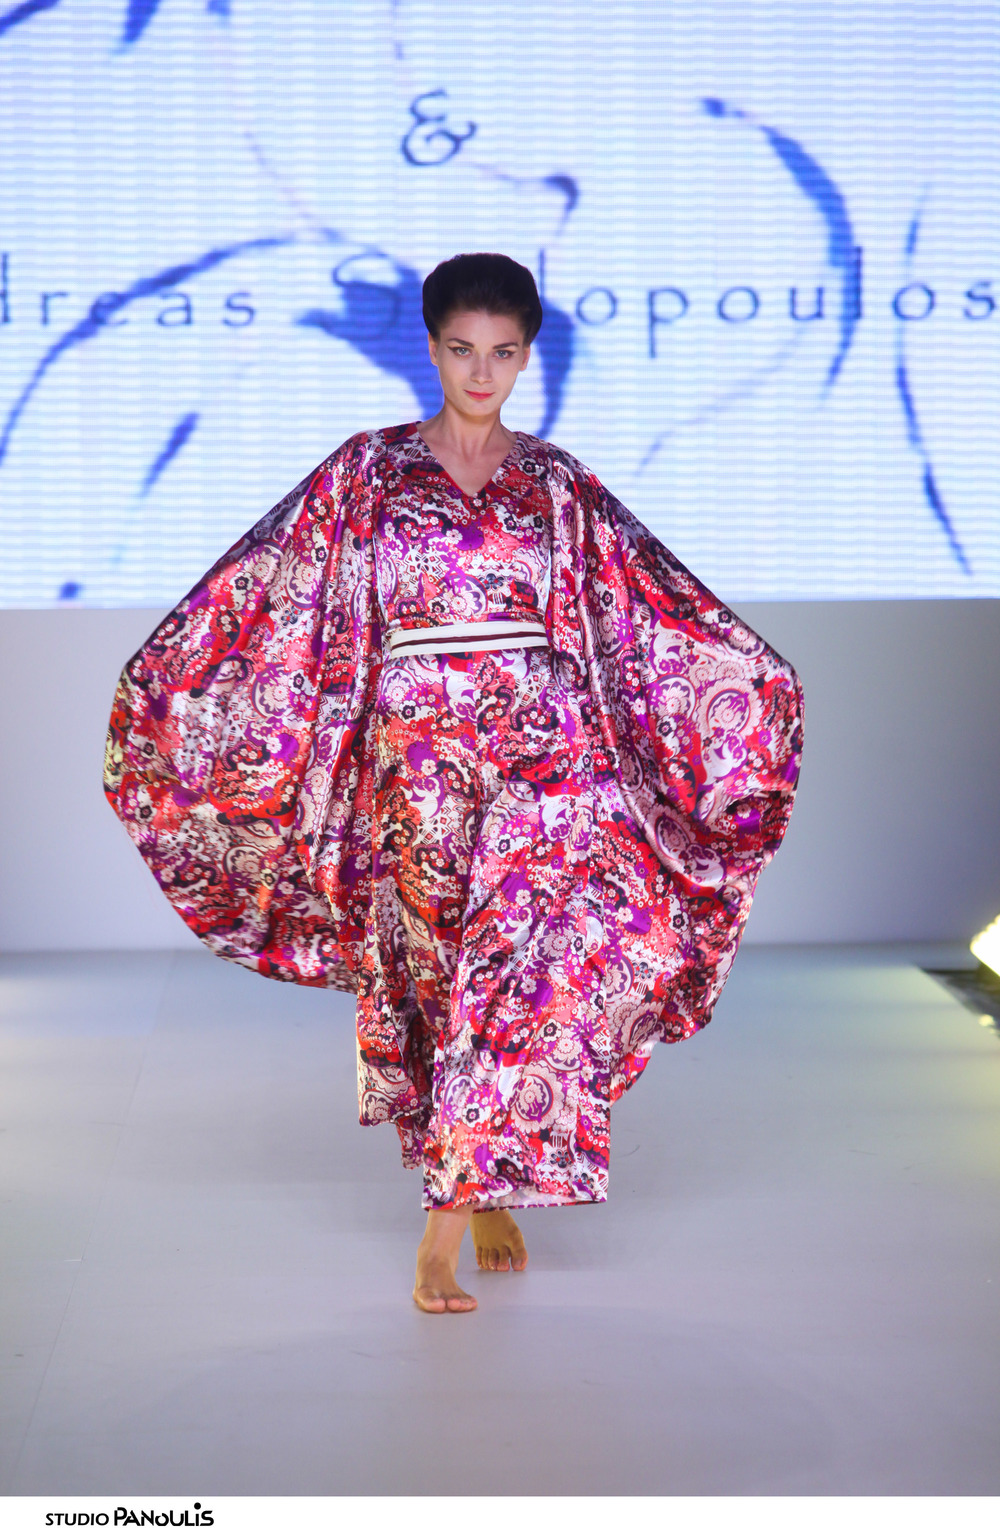 L.LADA & A.SPILIOPOULOS/Catwalk